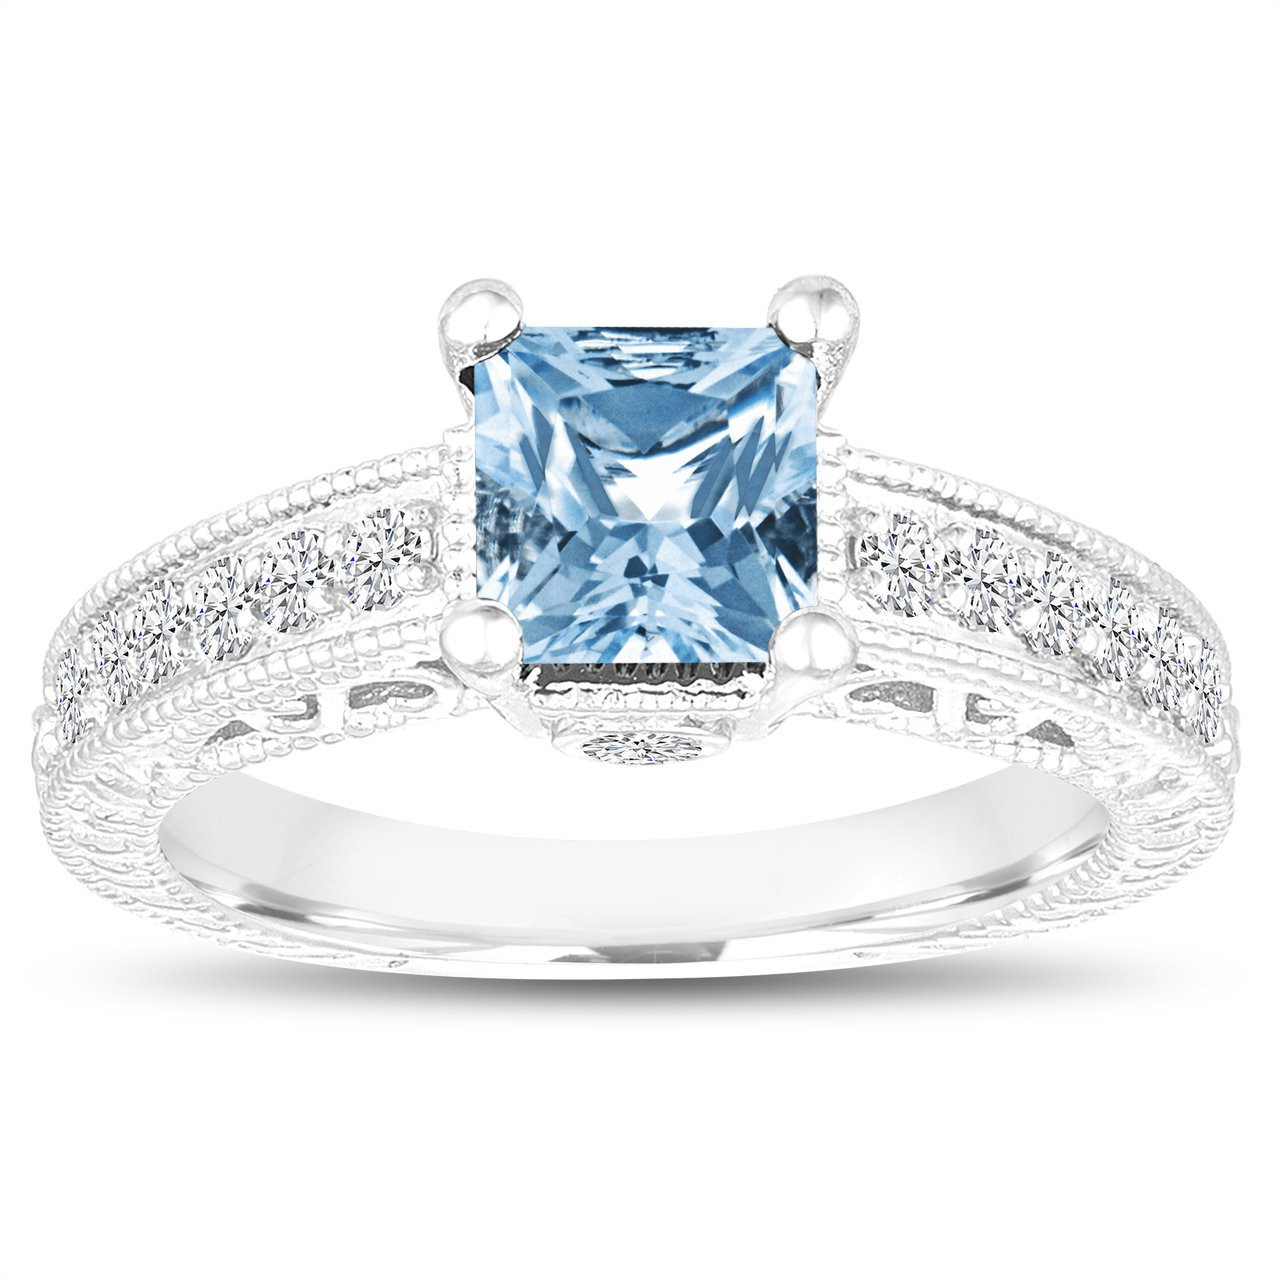 1.37 Ct Blue Topaz And Diamonds Ring 14k White Gold Natural With Latest Technology Fine Jewelry